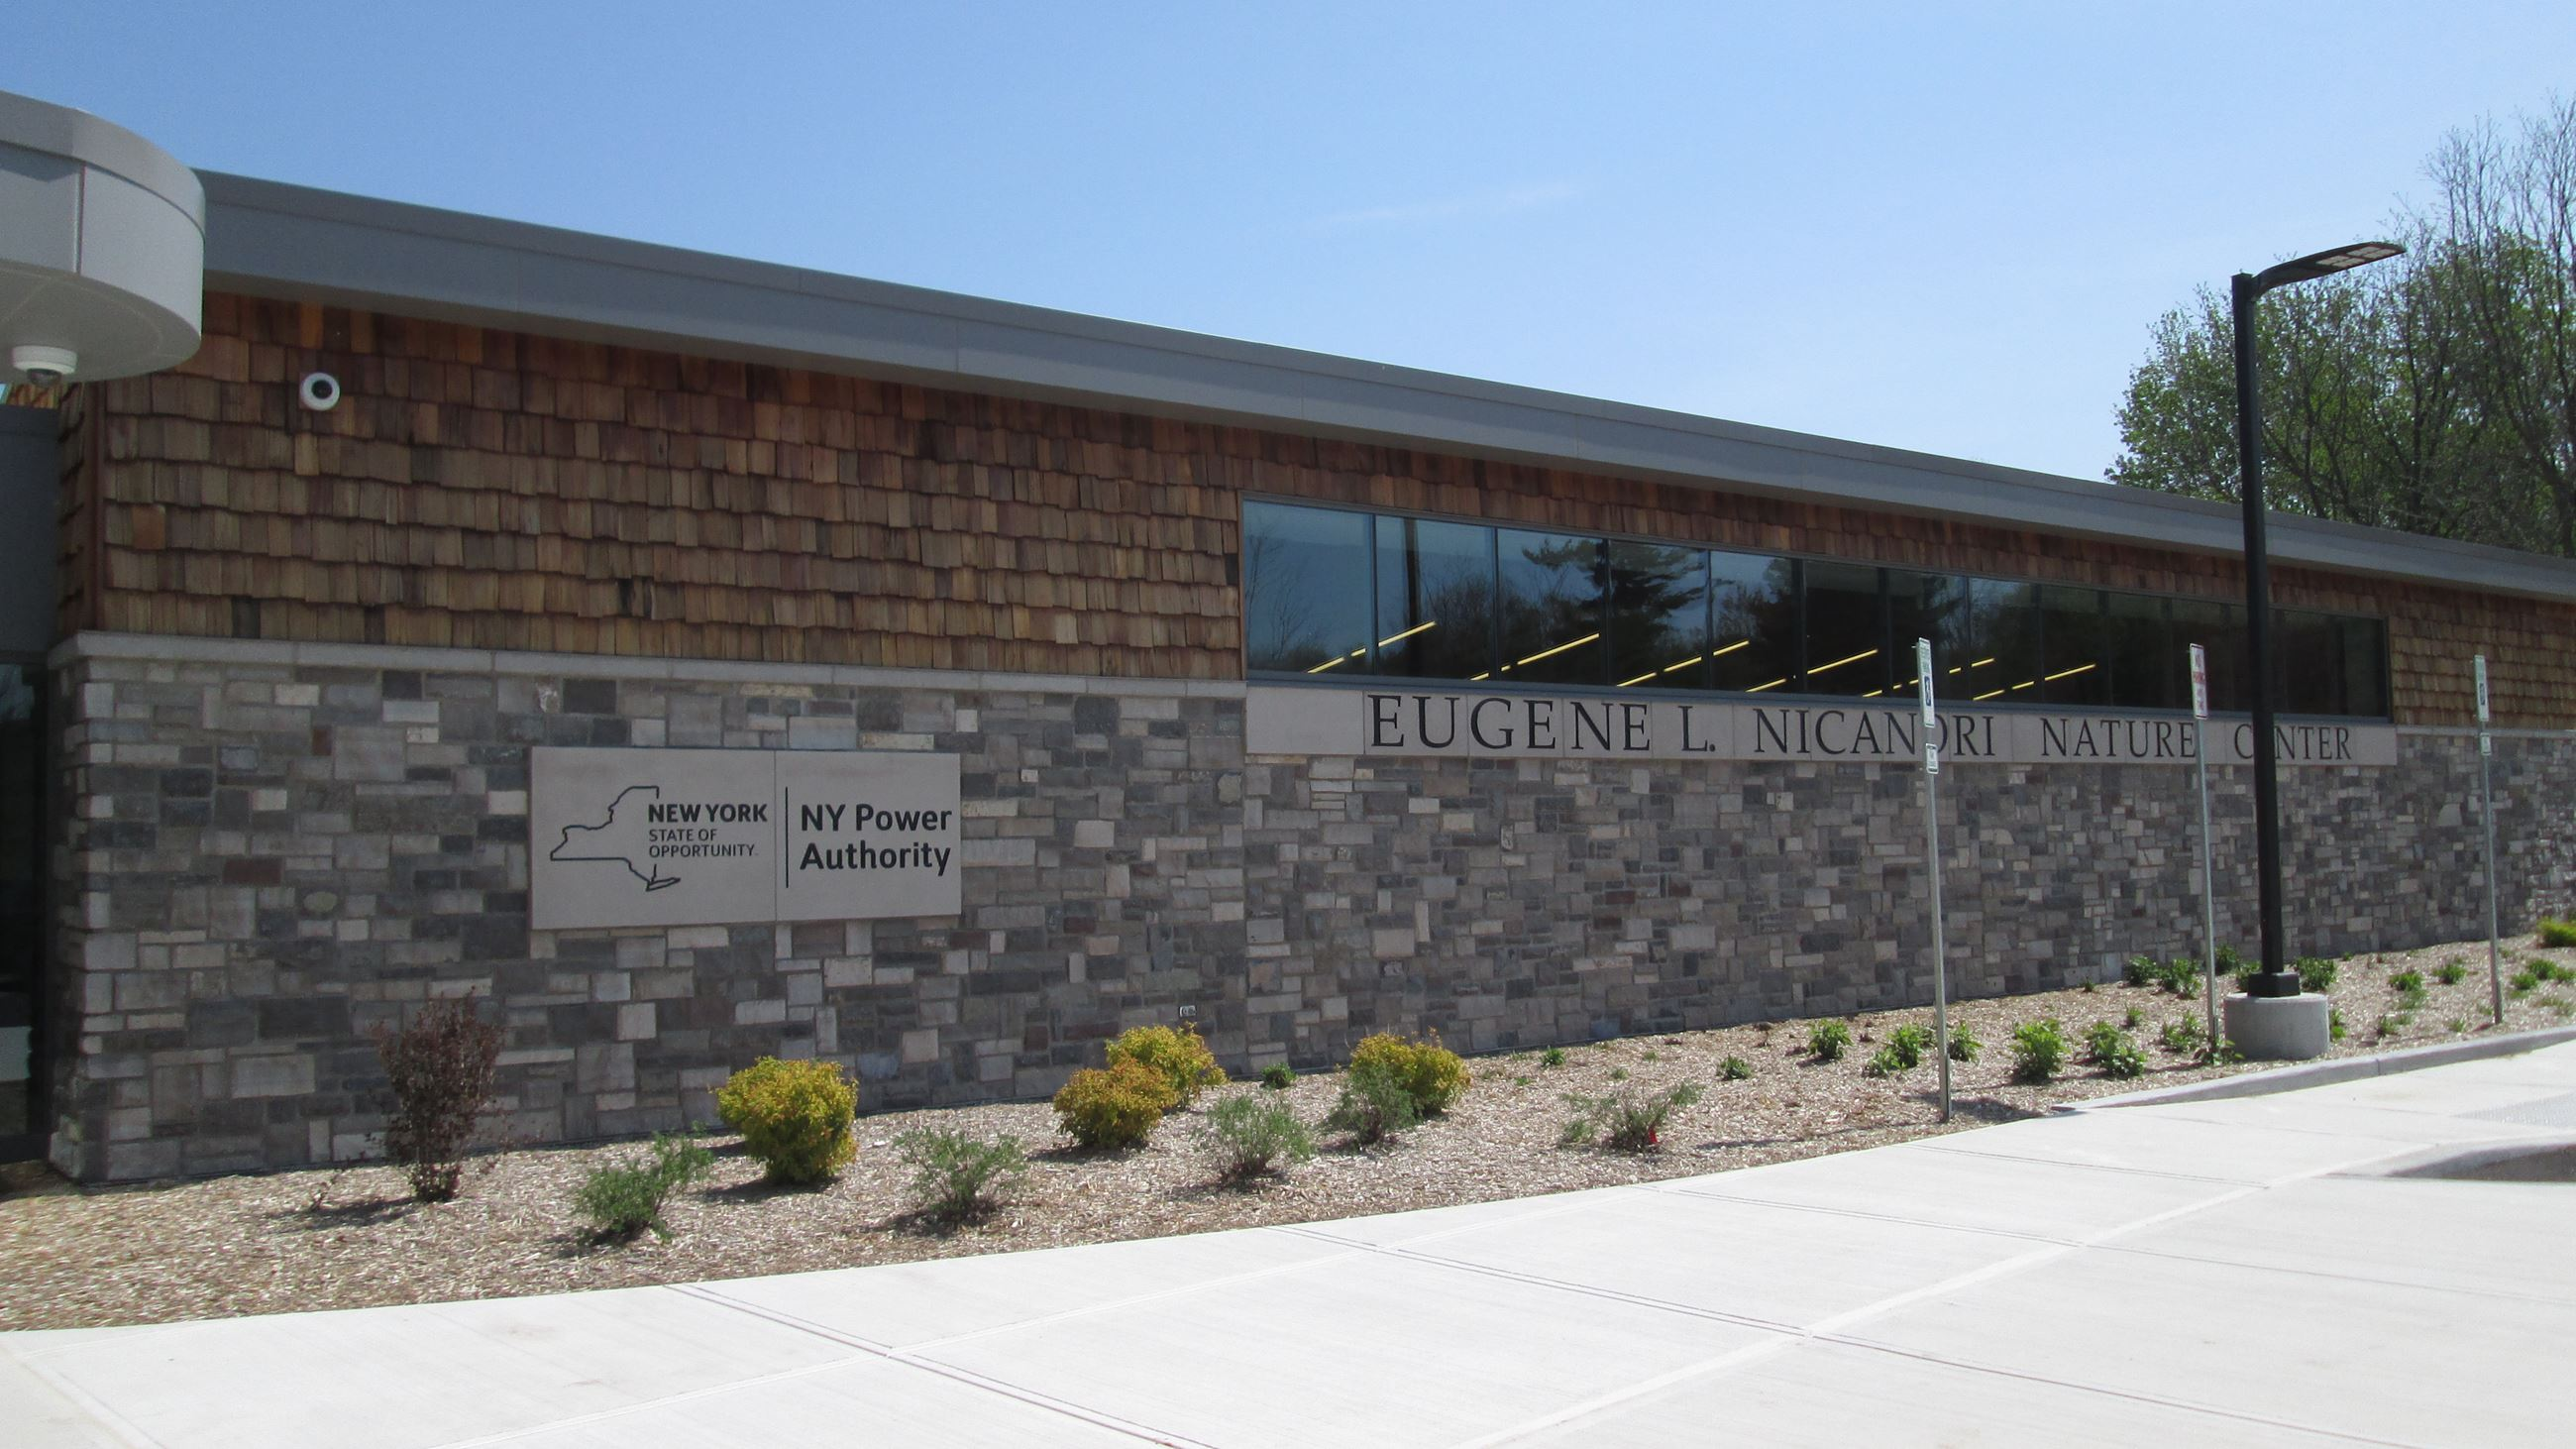 Eugene L. Nicandri Nature Center